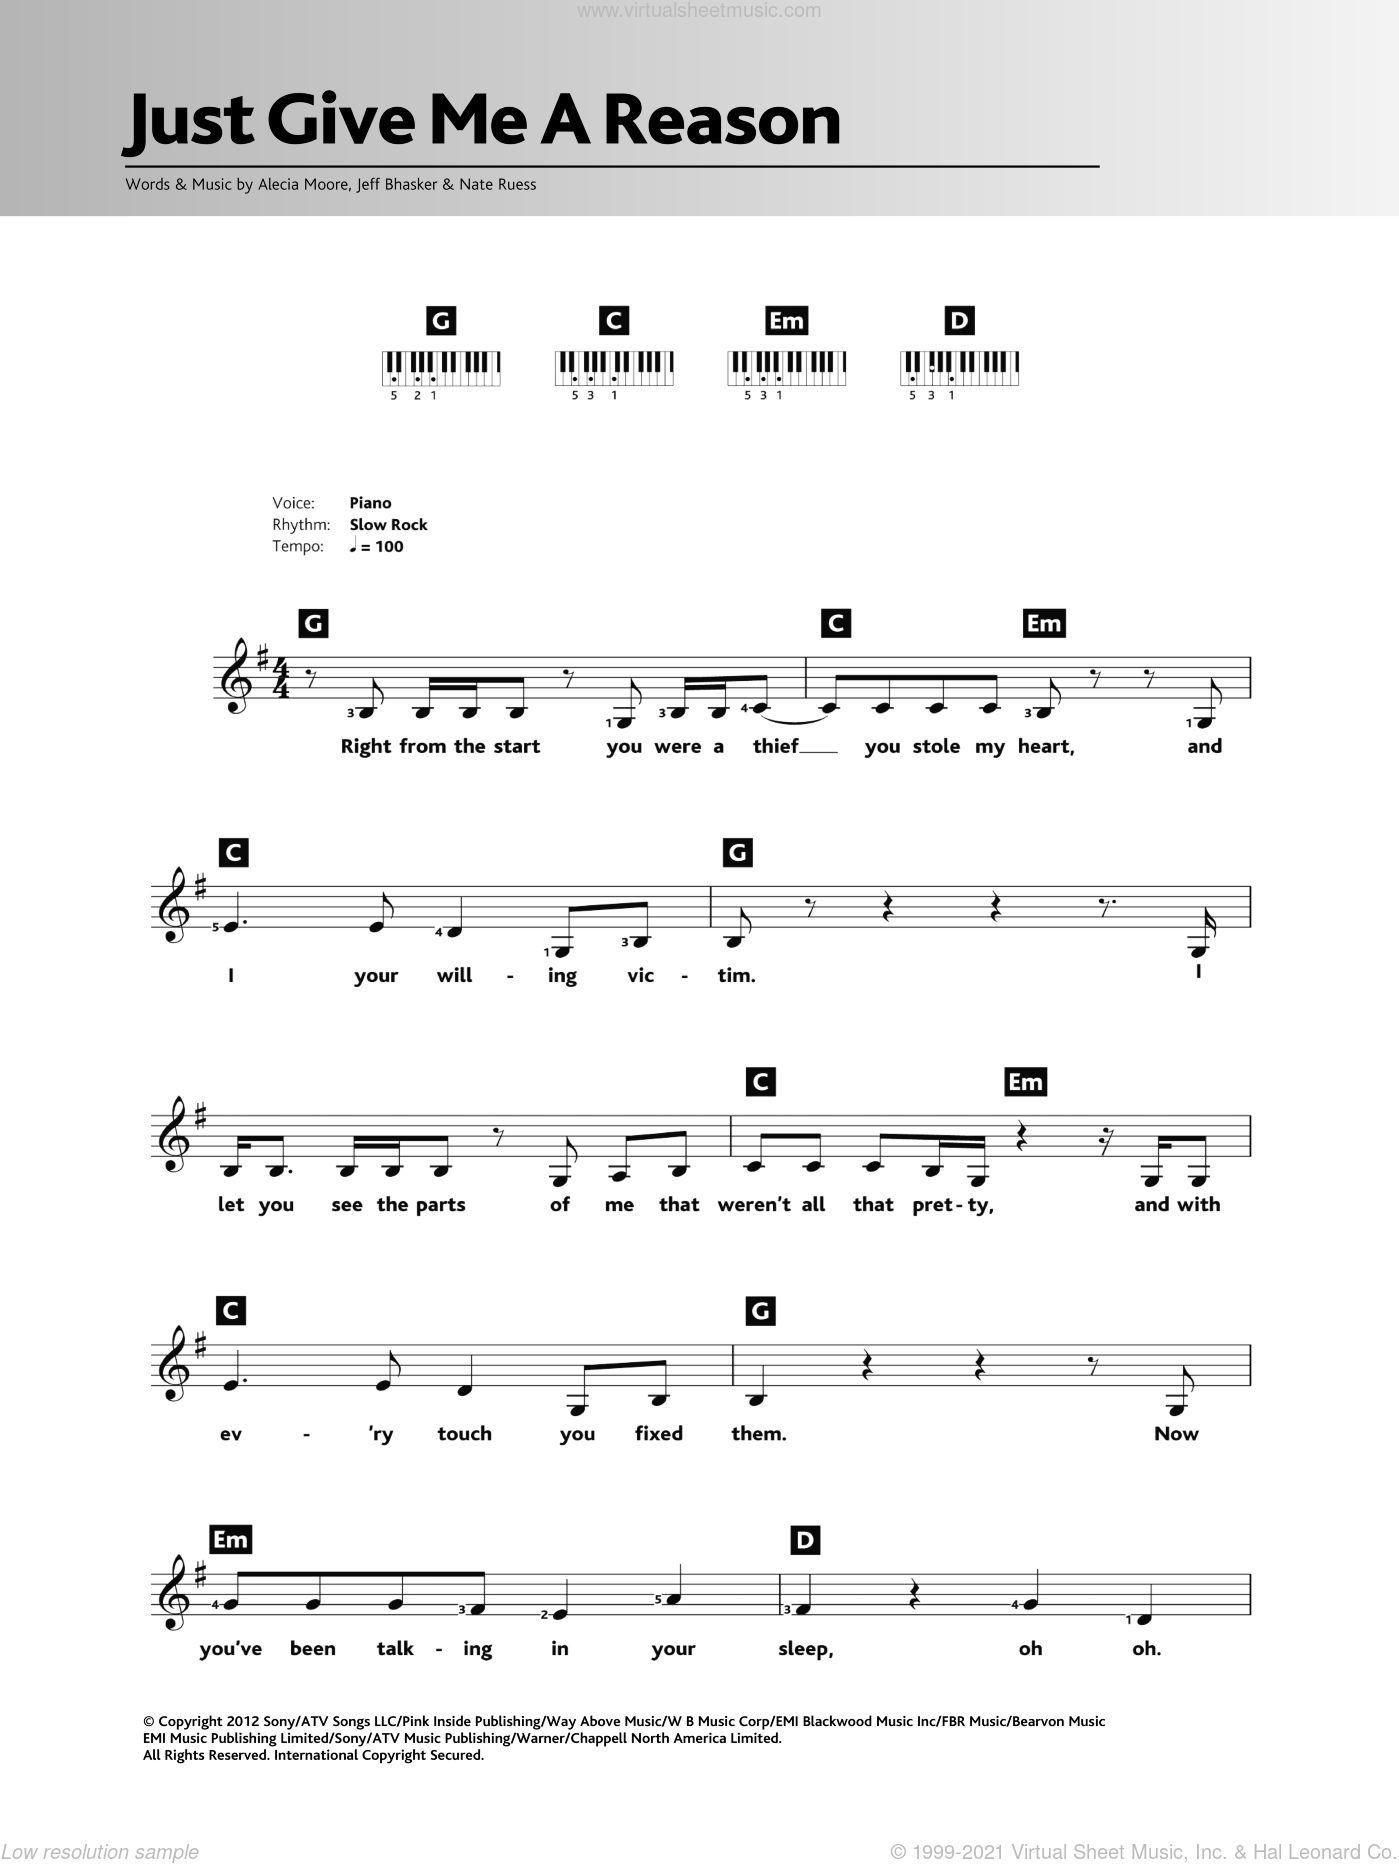 Just Give Me A Reason (featuring Nate Ruess) sheet music ...